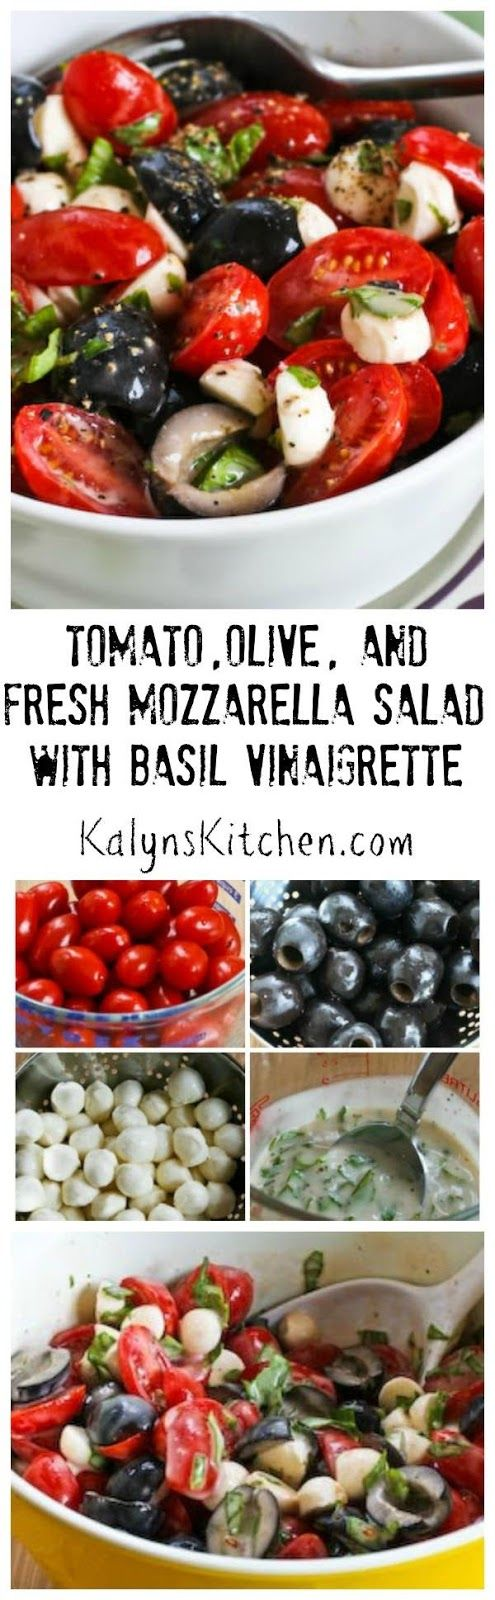 As soon as I can get fresh basil and good tomatoes I start making this Tomato, Olive, and Fresh Mozzarella Salad with Basil Vinaigrette, and I make it all summer long! And this amazing salad is low-carb, low-glycemic, gluten-free,  and South Beach Diet friendly! [from KalynsKitchen.com]